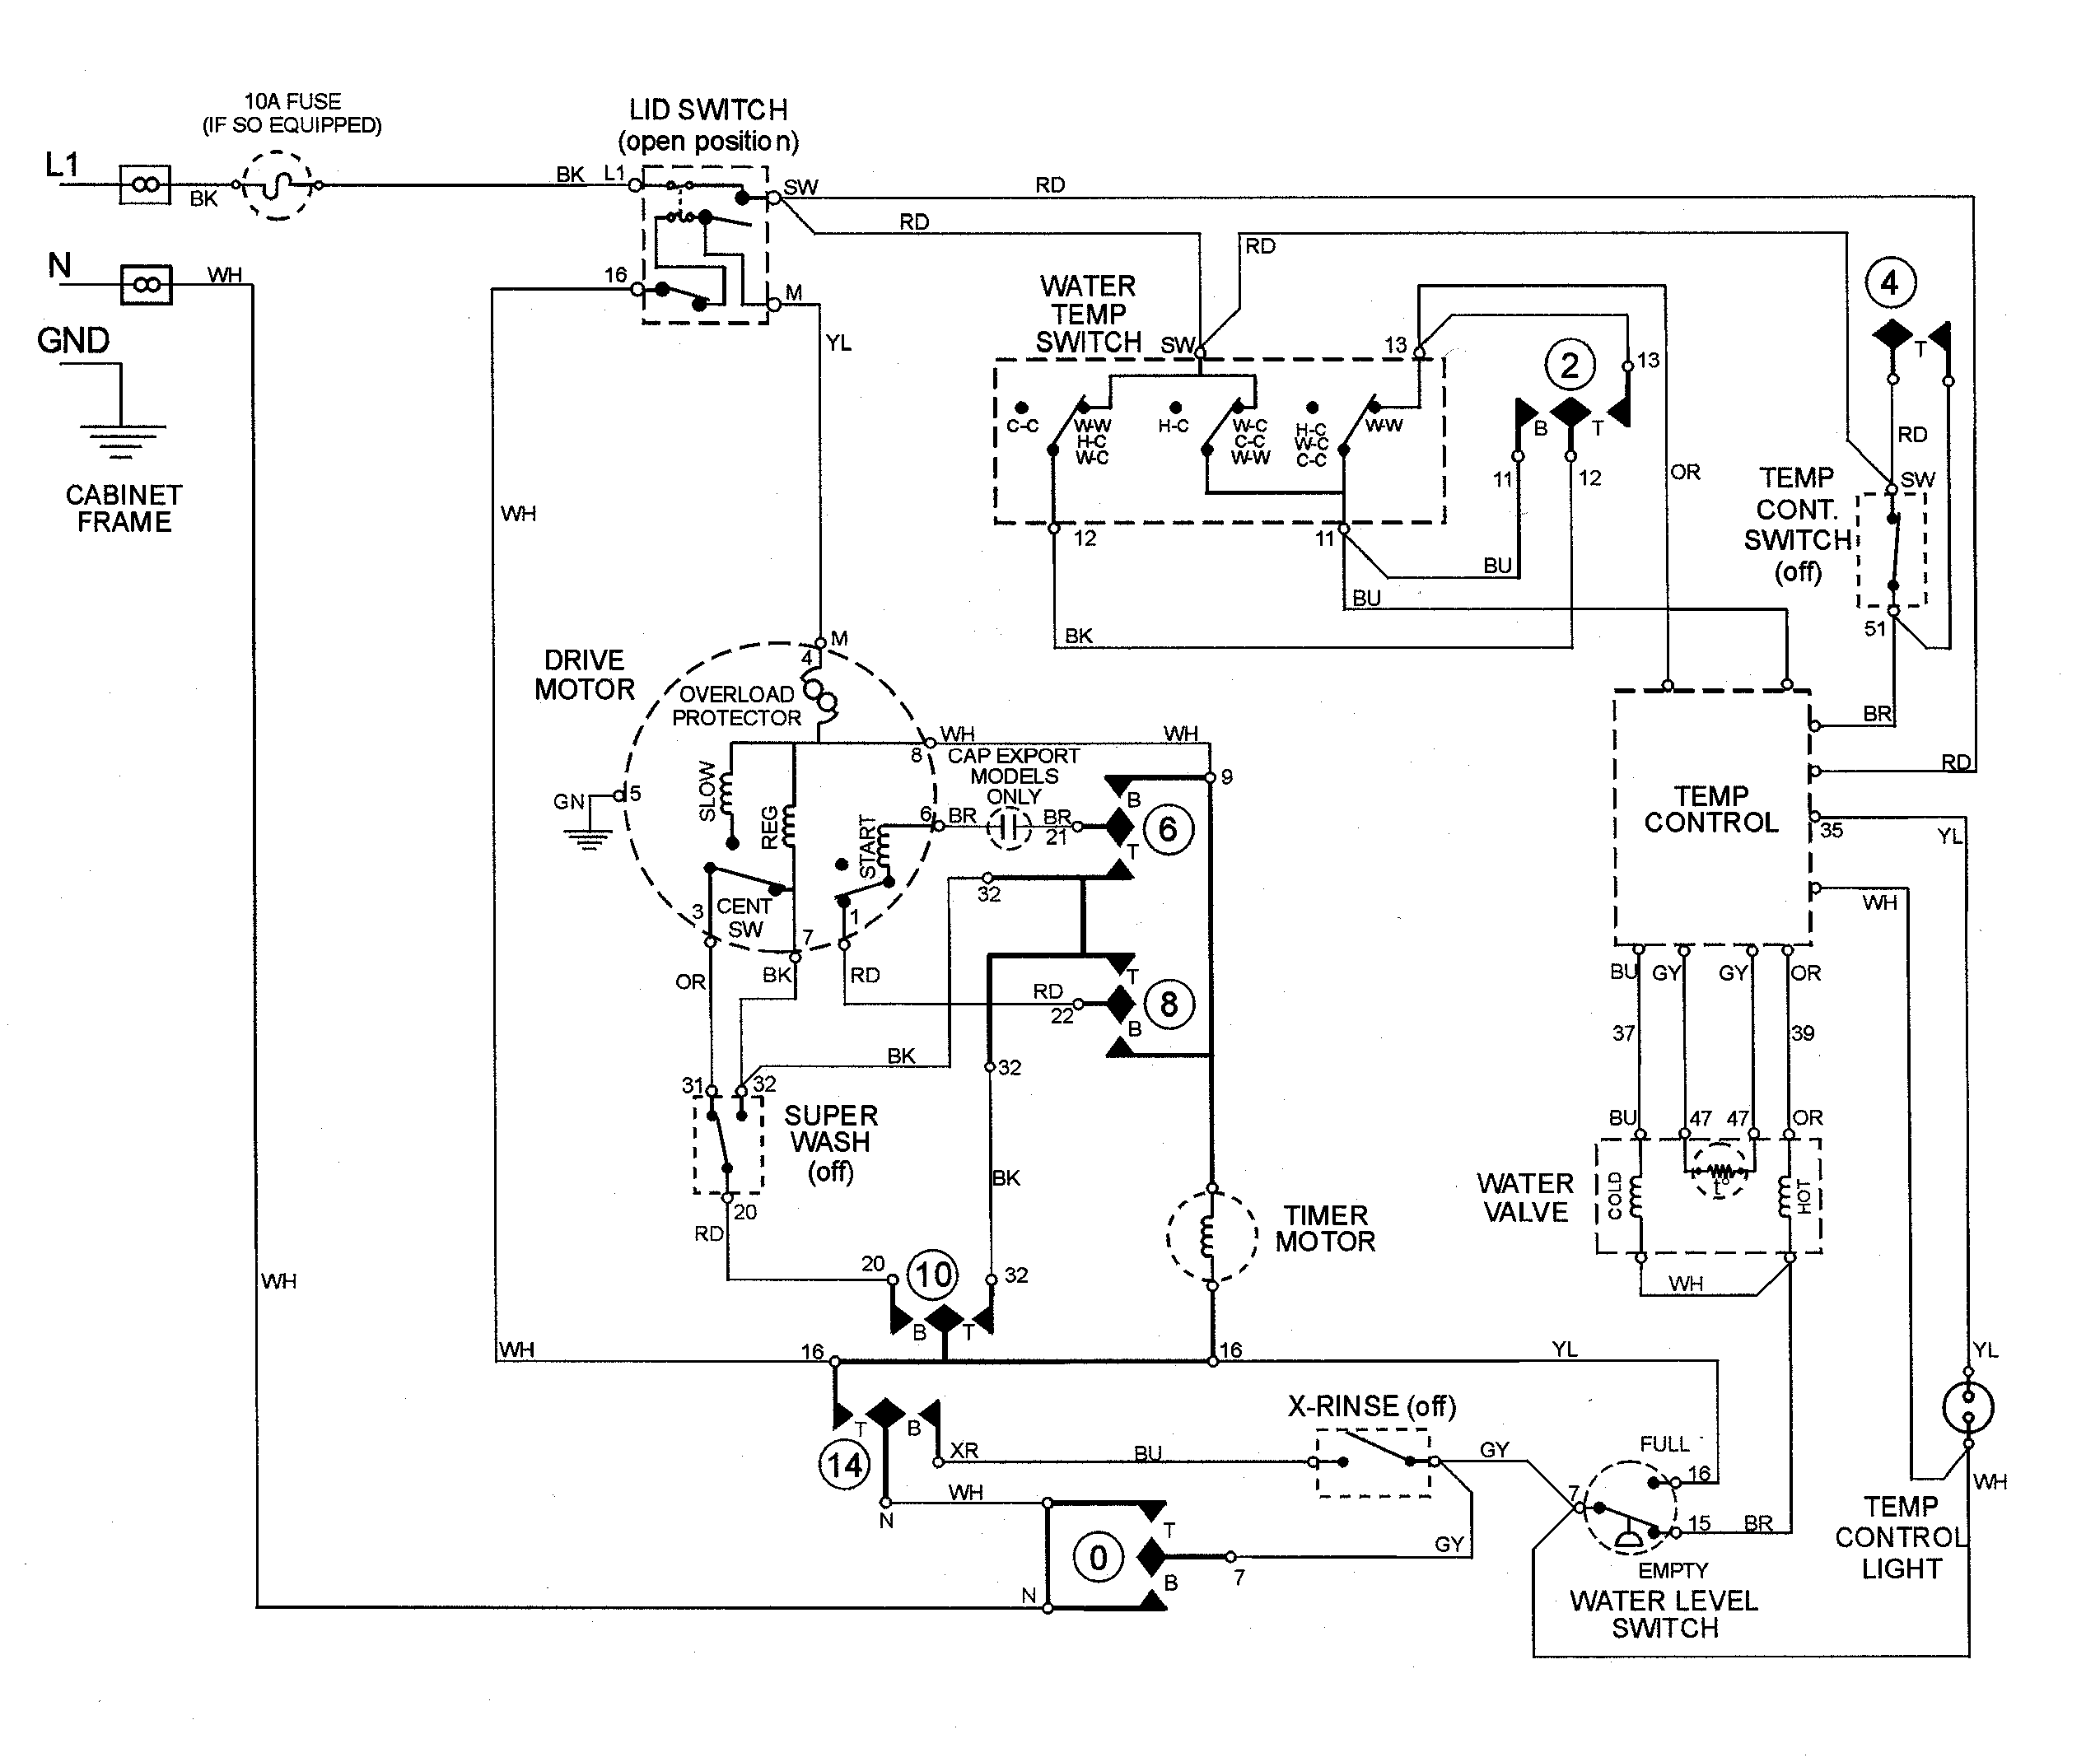 [GJFJ_338]  Wiring Diagram Of Washing Machine Motor , http://bookingritzcarlton.info/ wiring-diagram-of-wa..… | Washing machine motor, Electric dryers, Washing  machine and dryer | Wiring Diagram Of Washing Machine Motor |  | Pinterest